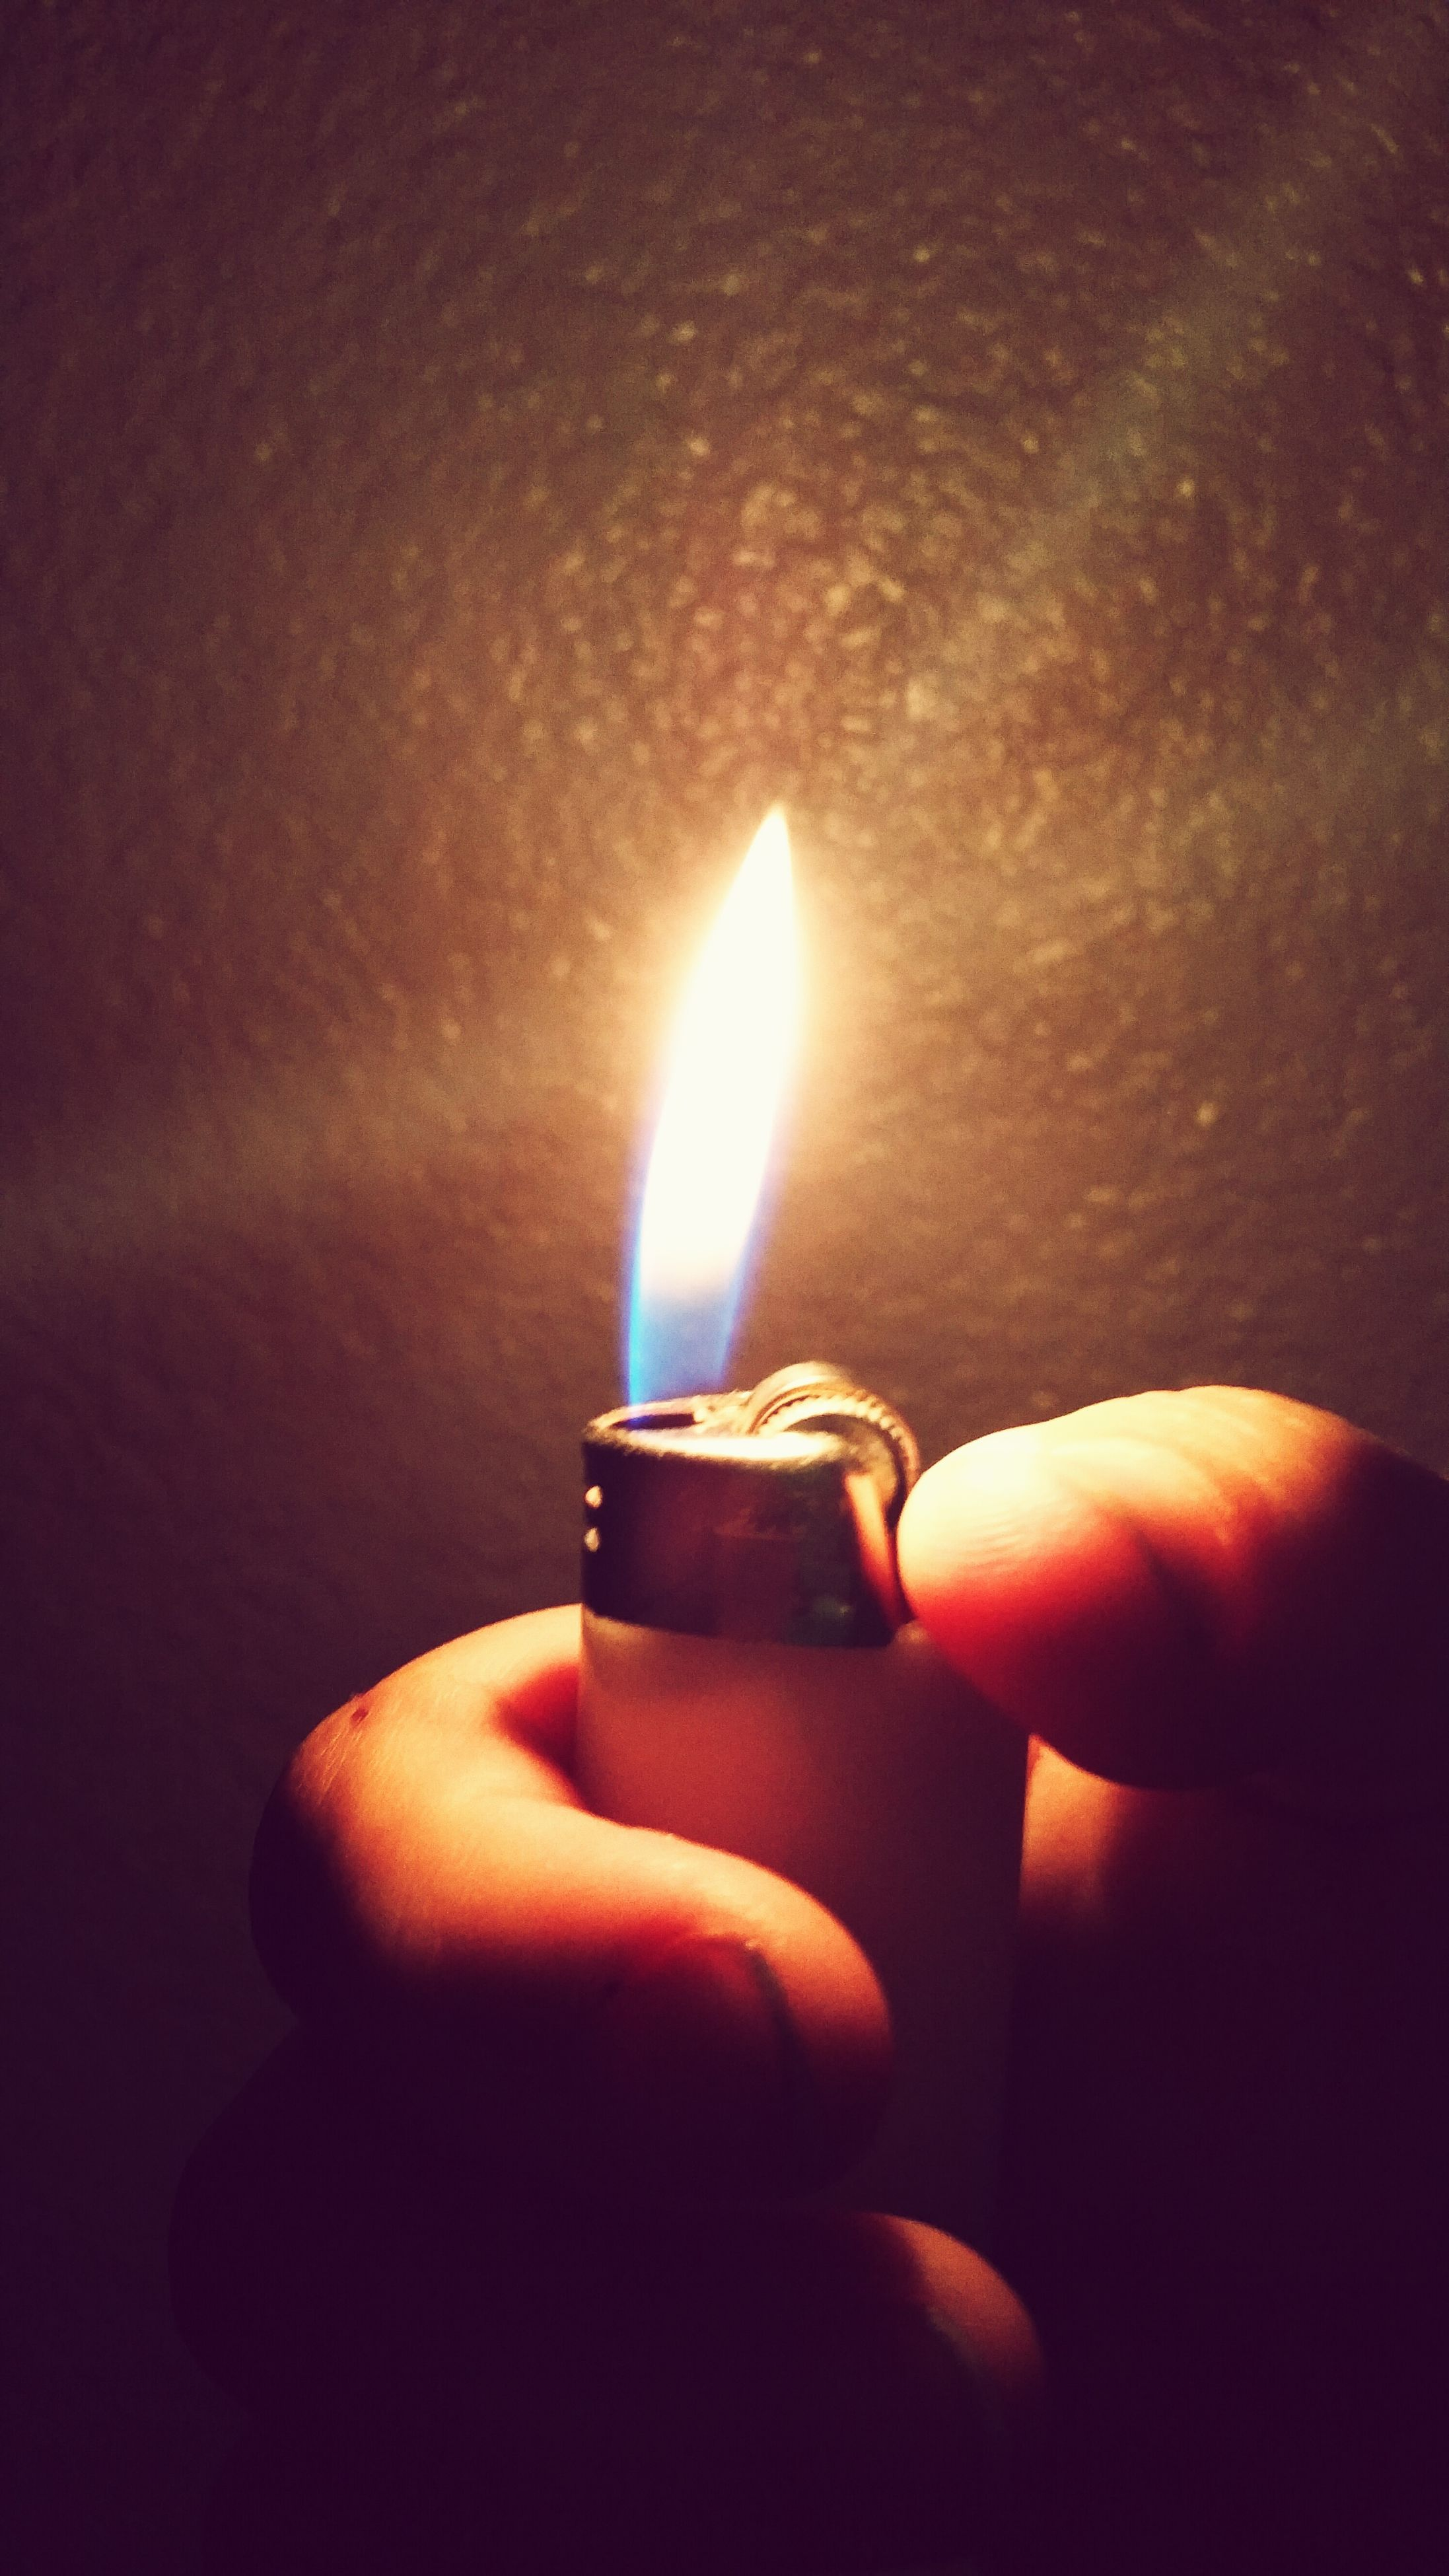 indoors, person, burning, part of, holding, flame, close-up, human finger, heat - temperature, cropped, fire - natural phenomenon, candle, glowing, lit, single object, illuminated, personal perspective